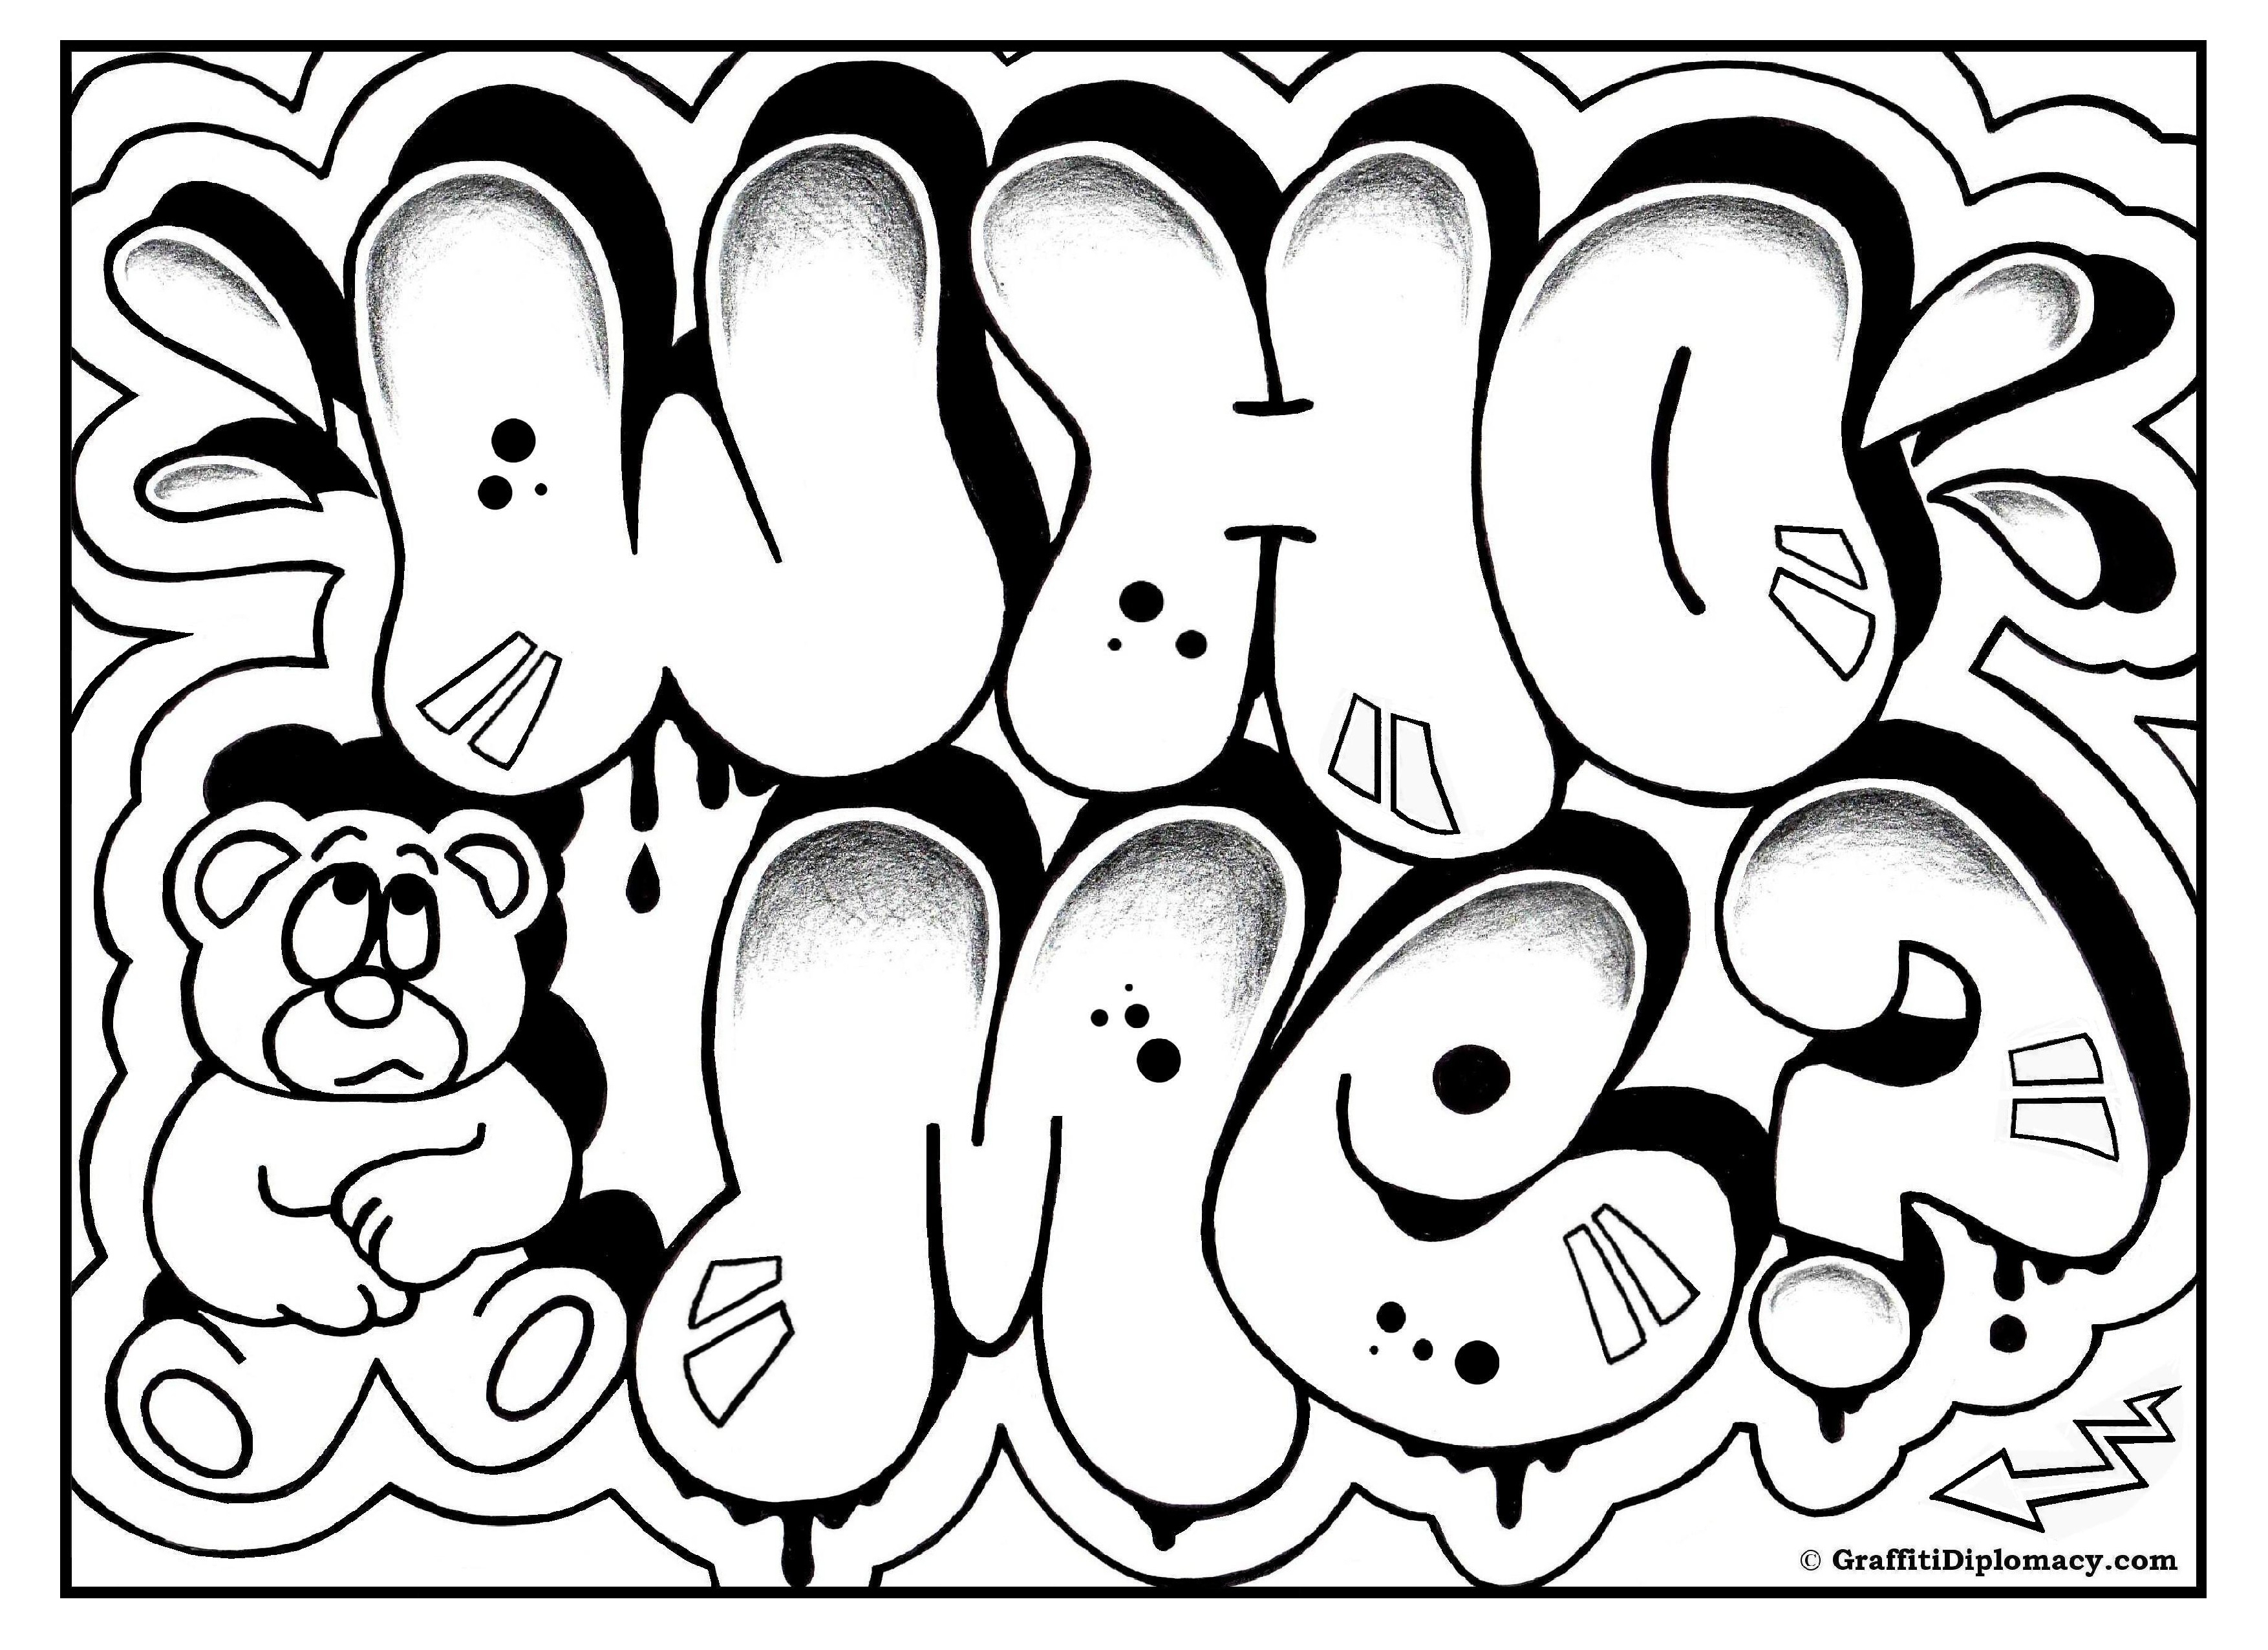 3508x2552 Cool Easy Graffiti Drawings How To Draw Peace In Graffiti Letters